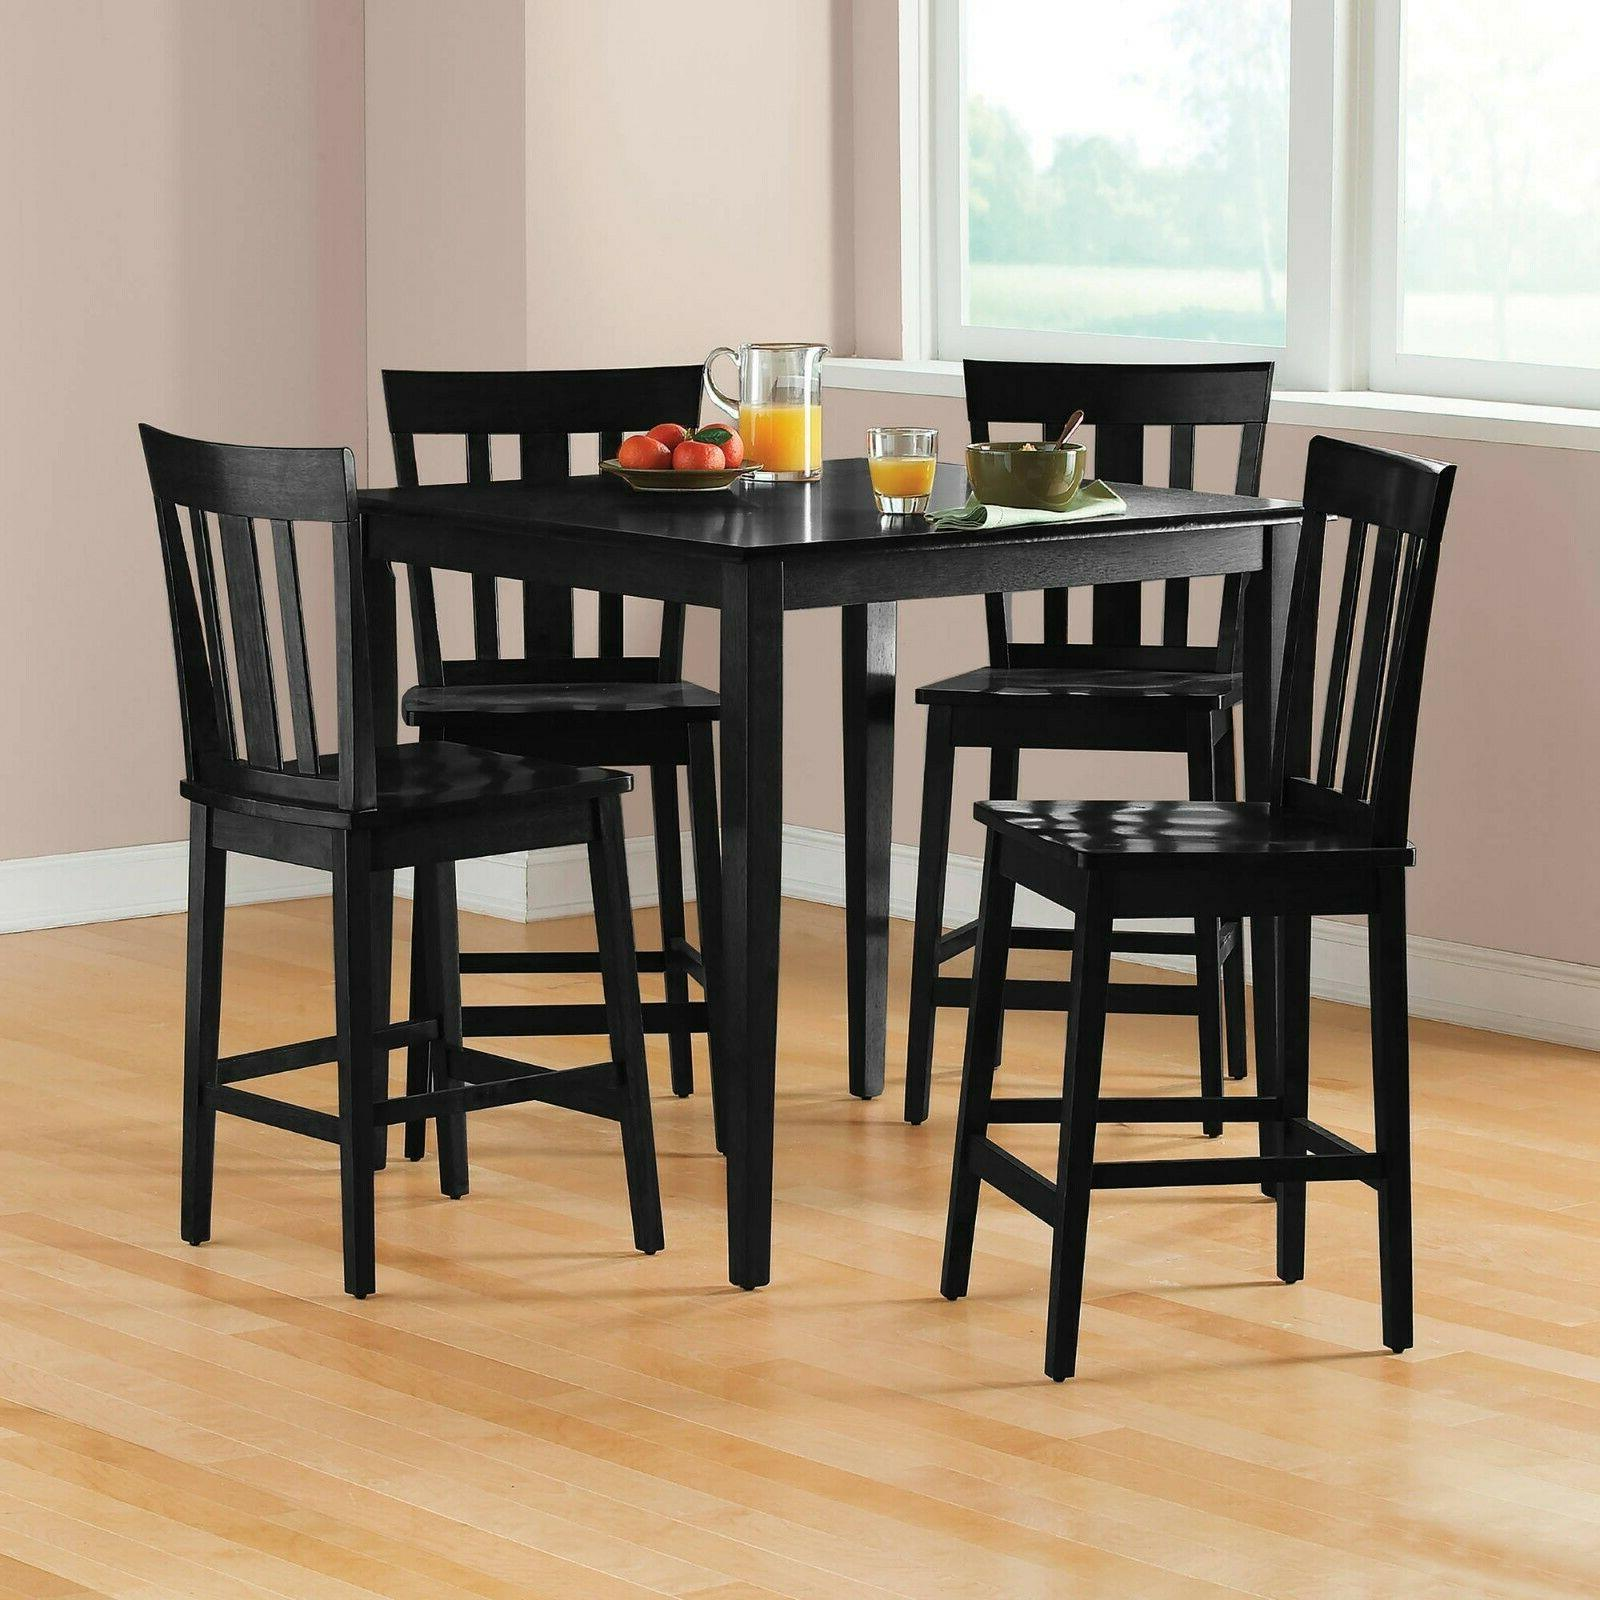 Counter Height Dining Set Table & Chair Sets 5 Piece Kitchen